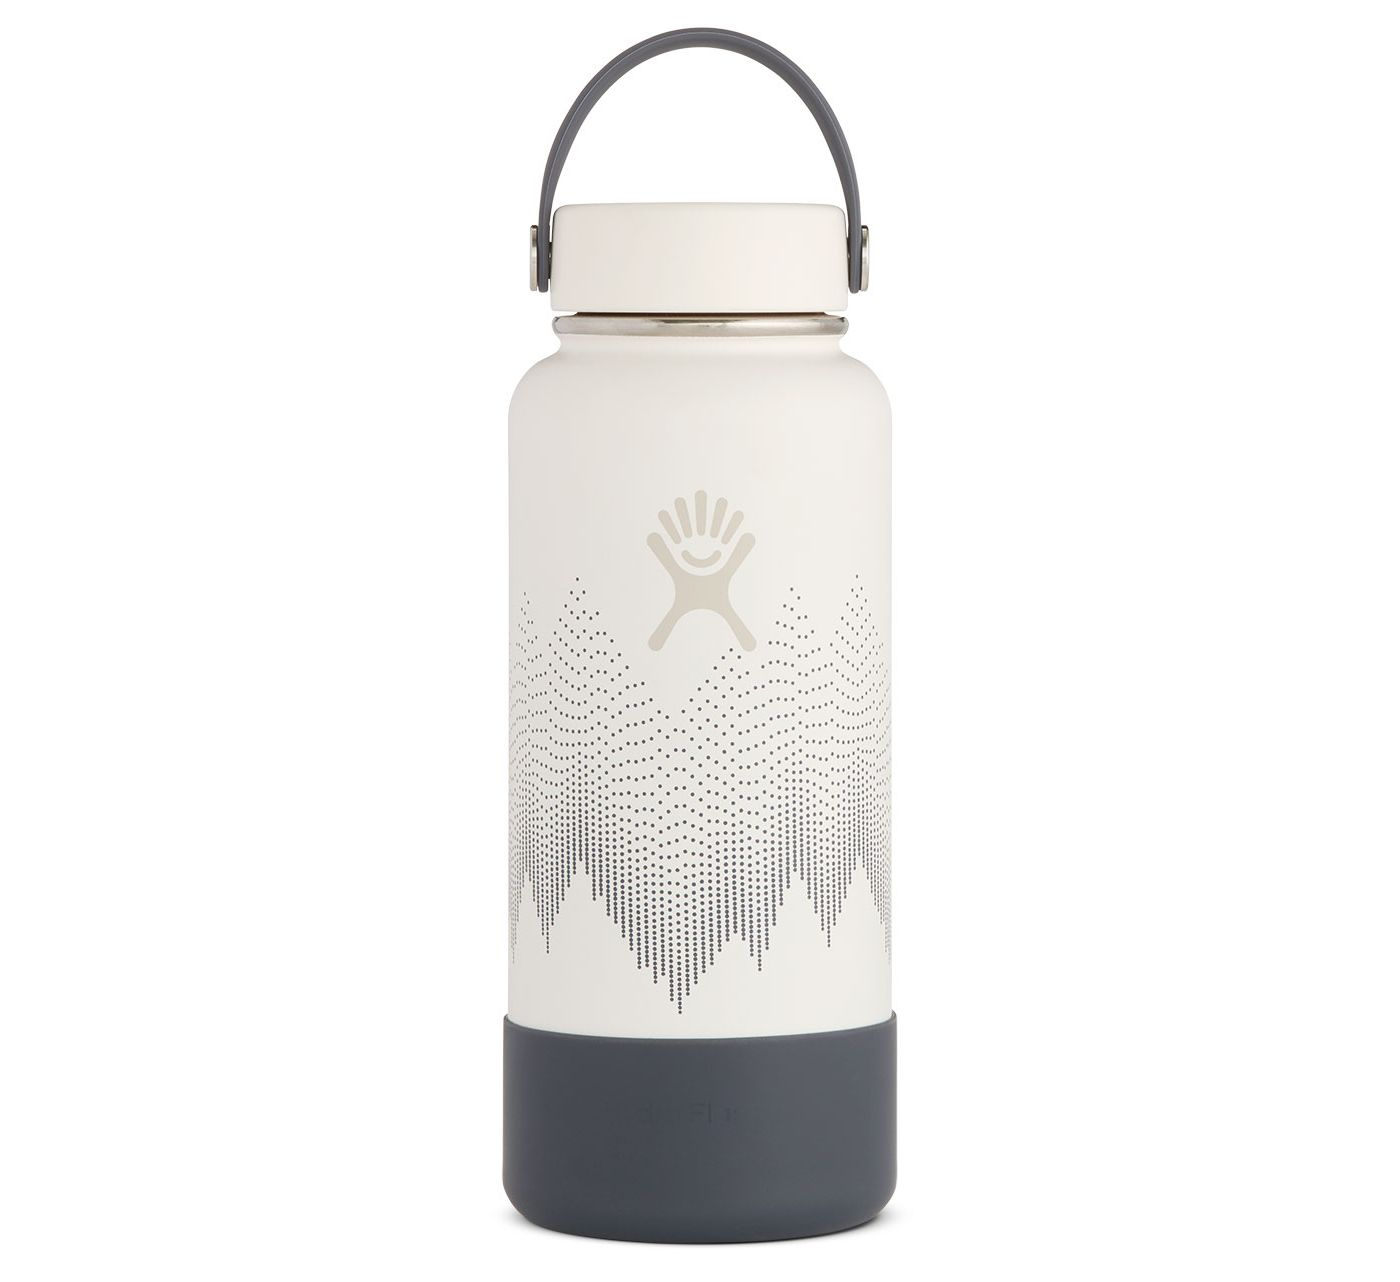 Hydro Flask Limited Edition Wonder Wide Mouth 32 oz. Bottle